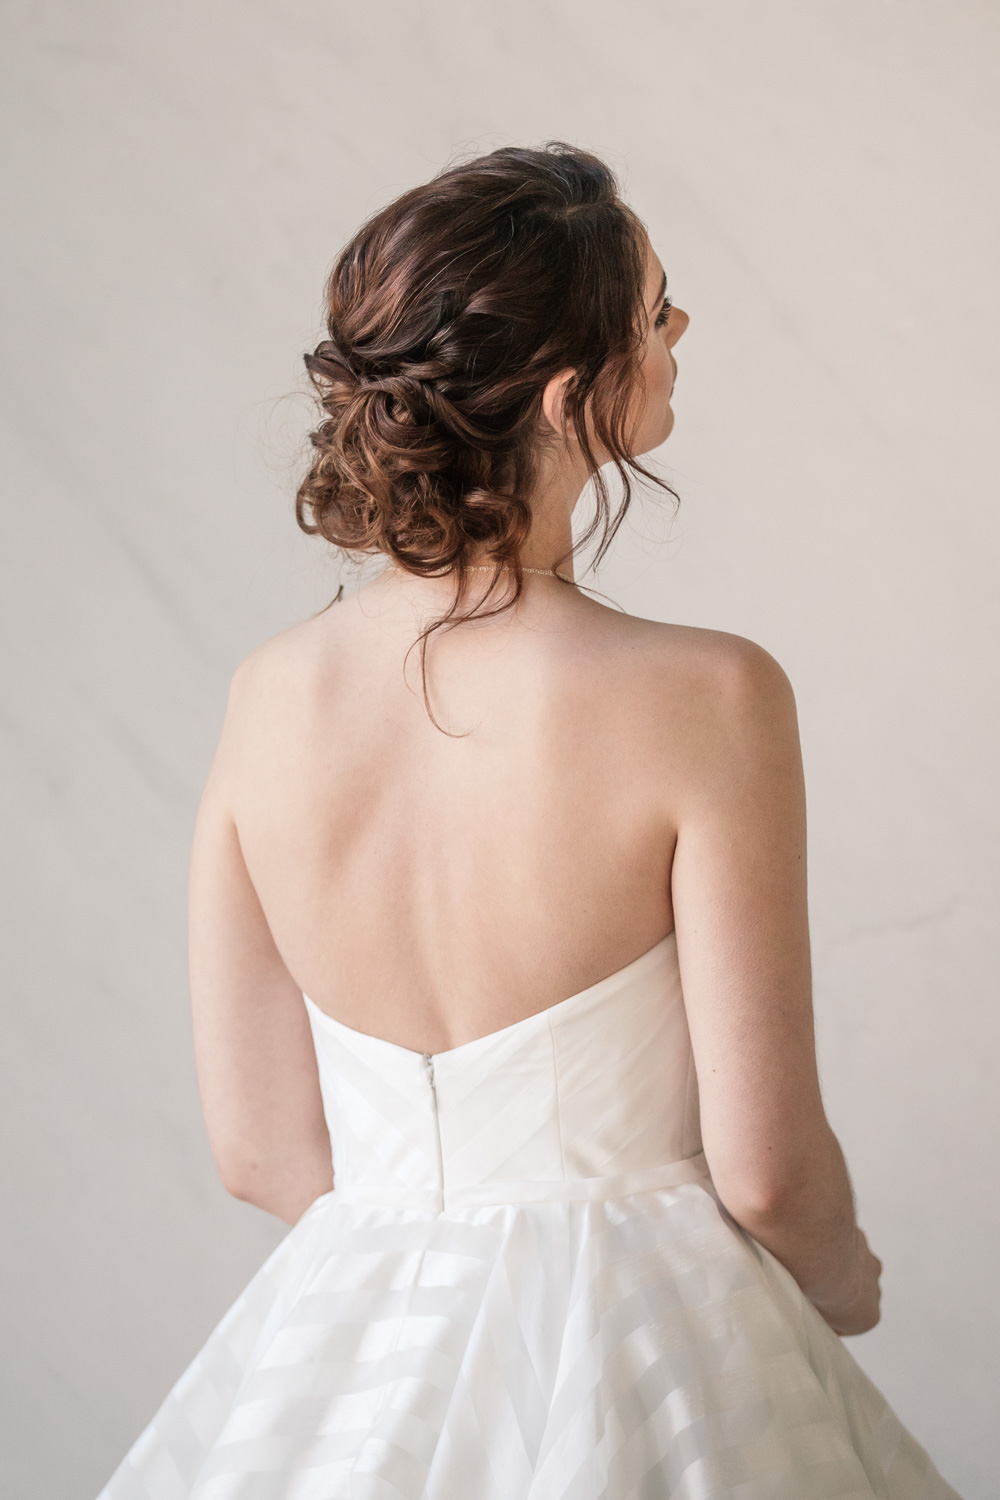 Hair Style Up Do Bride Bridal Winter Luxe Wedding Ideas Becky Harley Photography